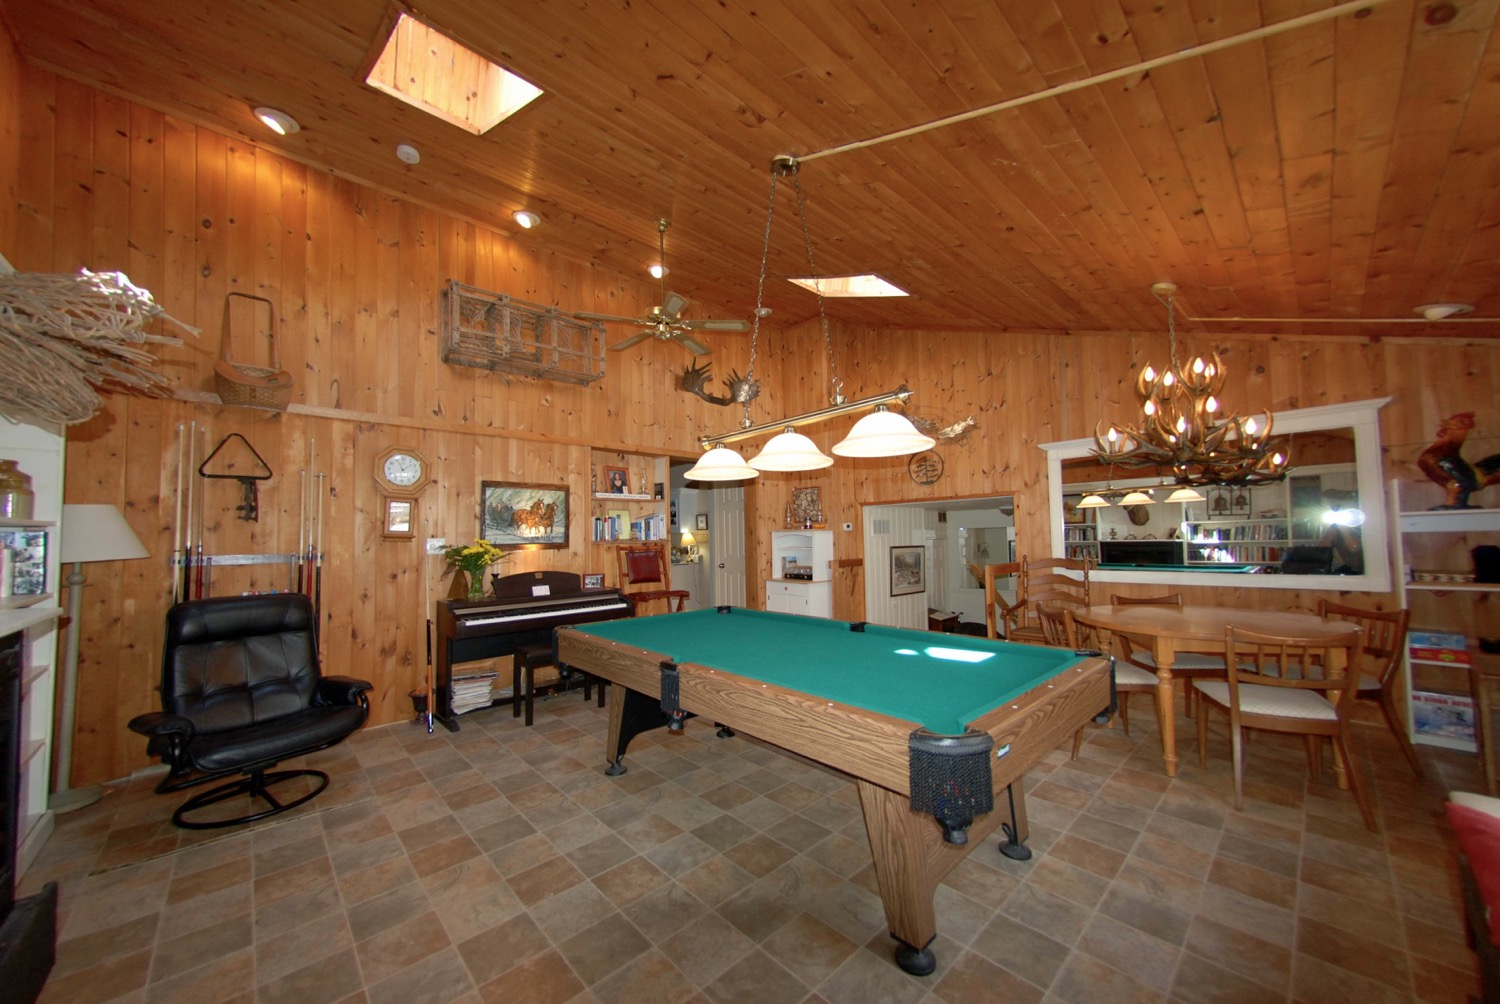 woodhaven-country-lodge-14.jpg